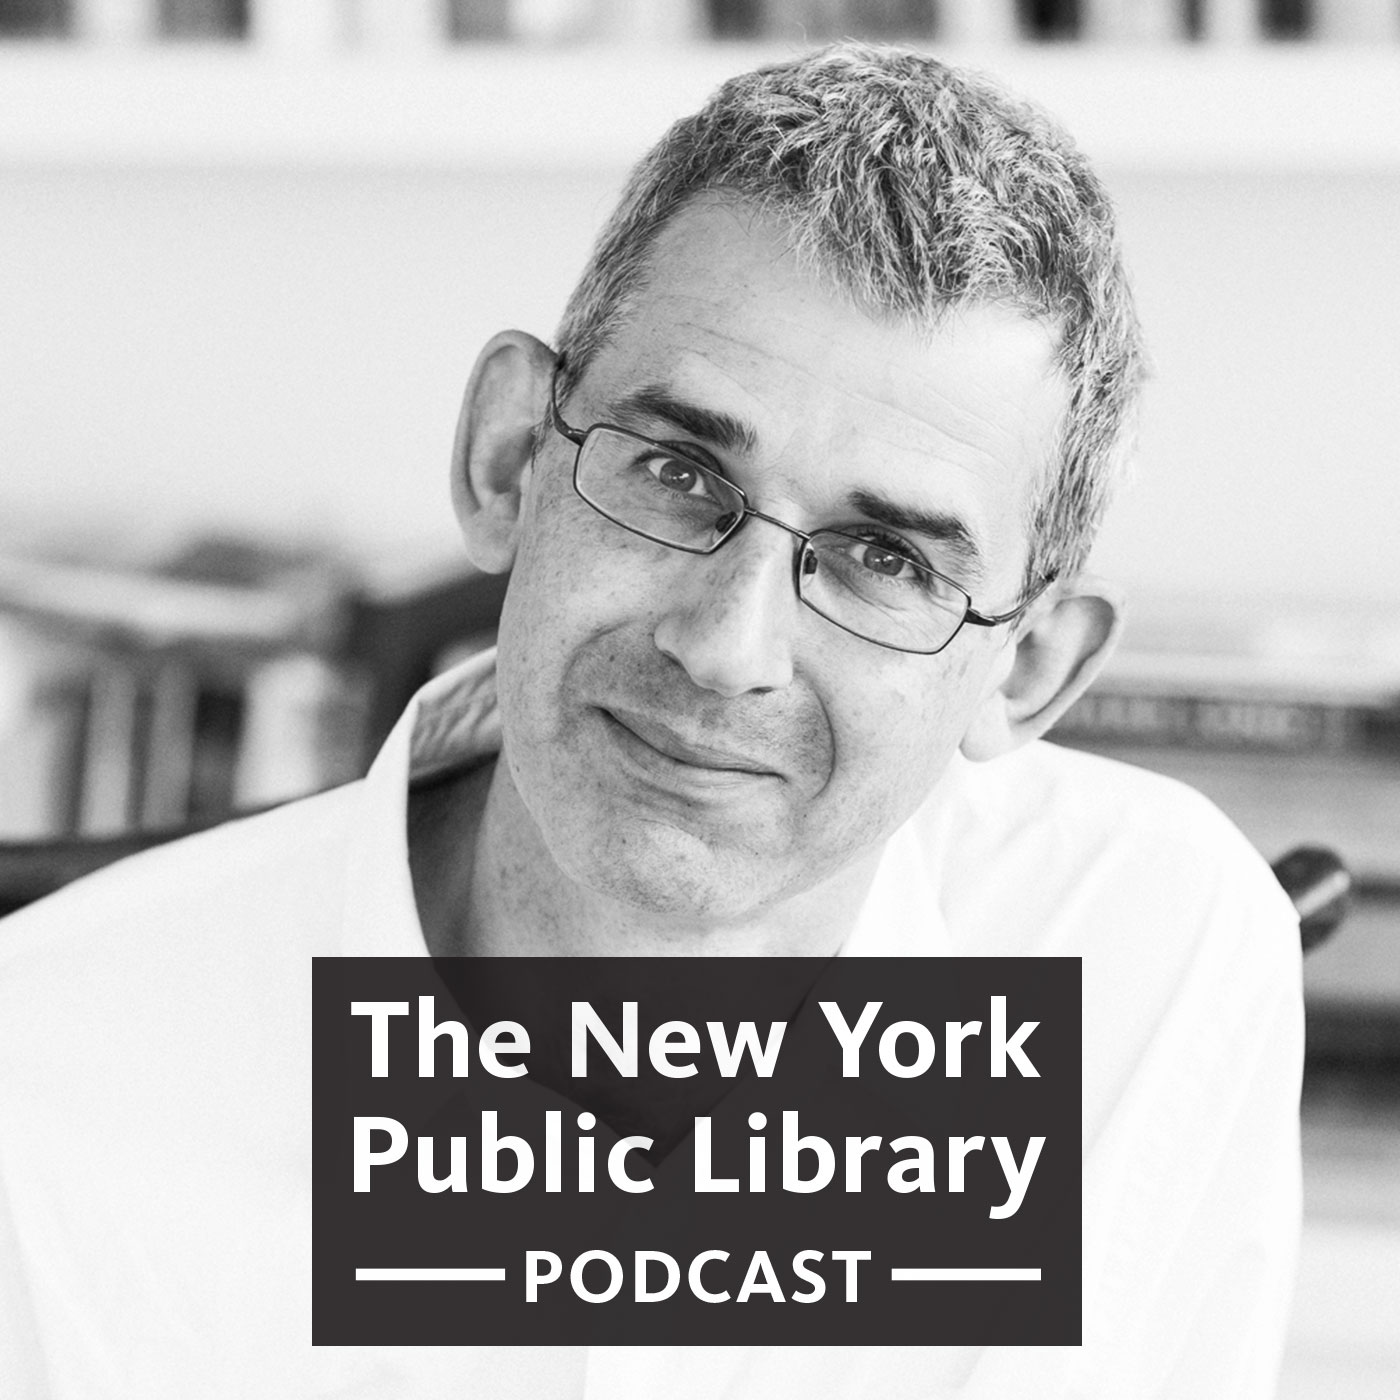 Edmund de Waal on Porcelain, Time Travel, & Sound